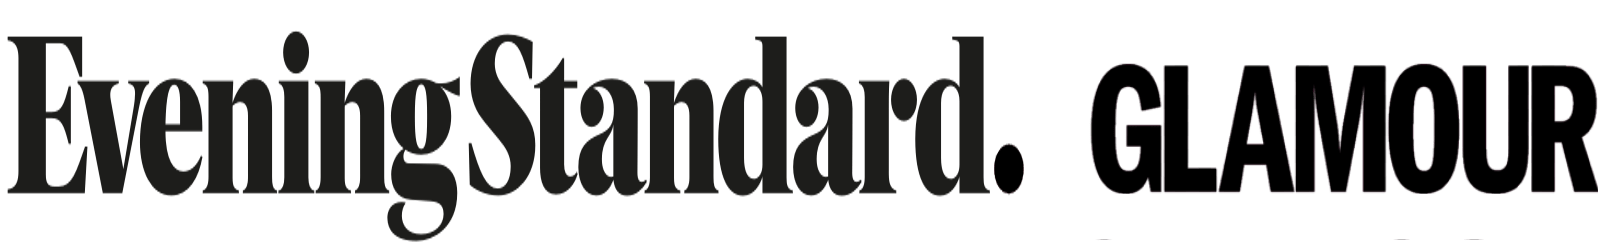 evening_Standard_Glamour_Magazine_logo